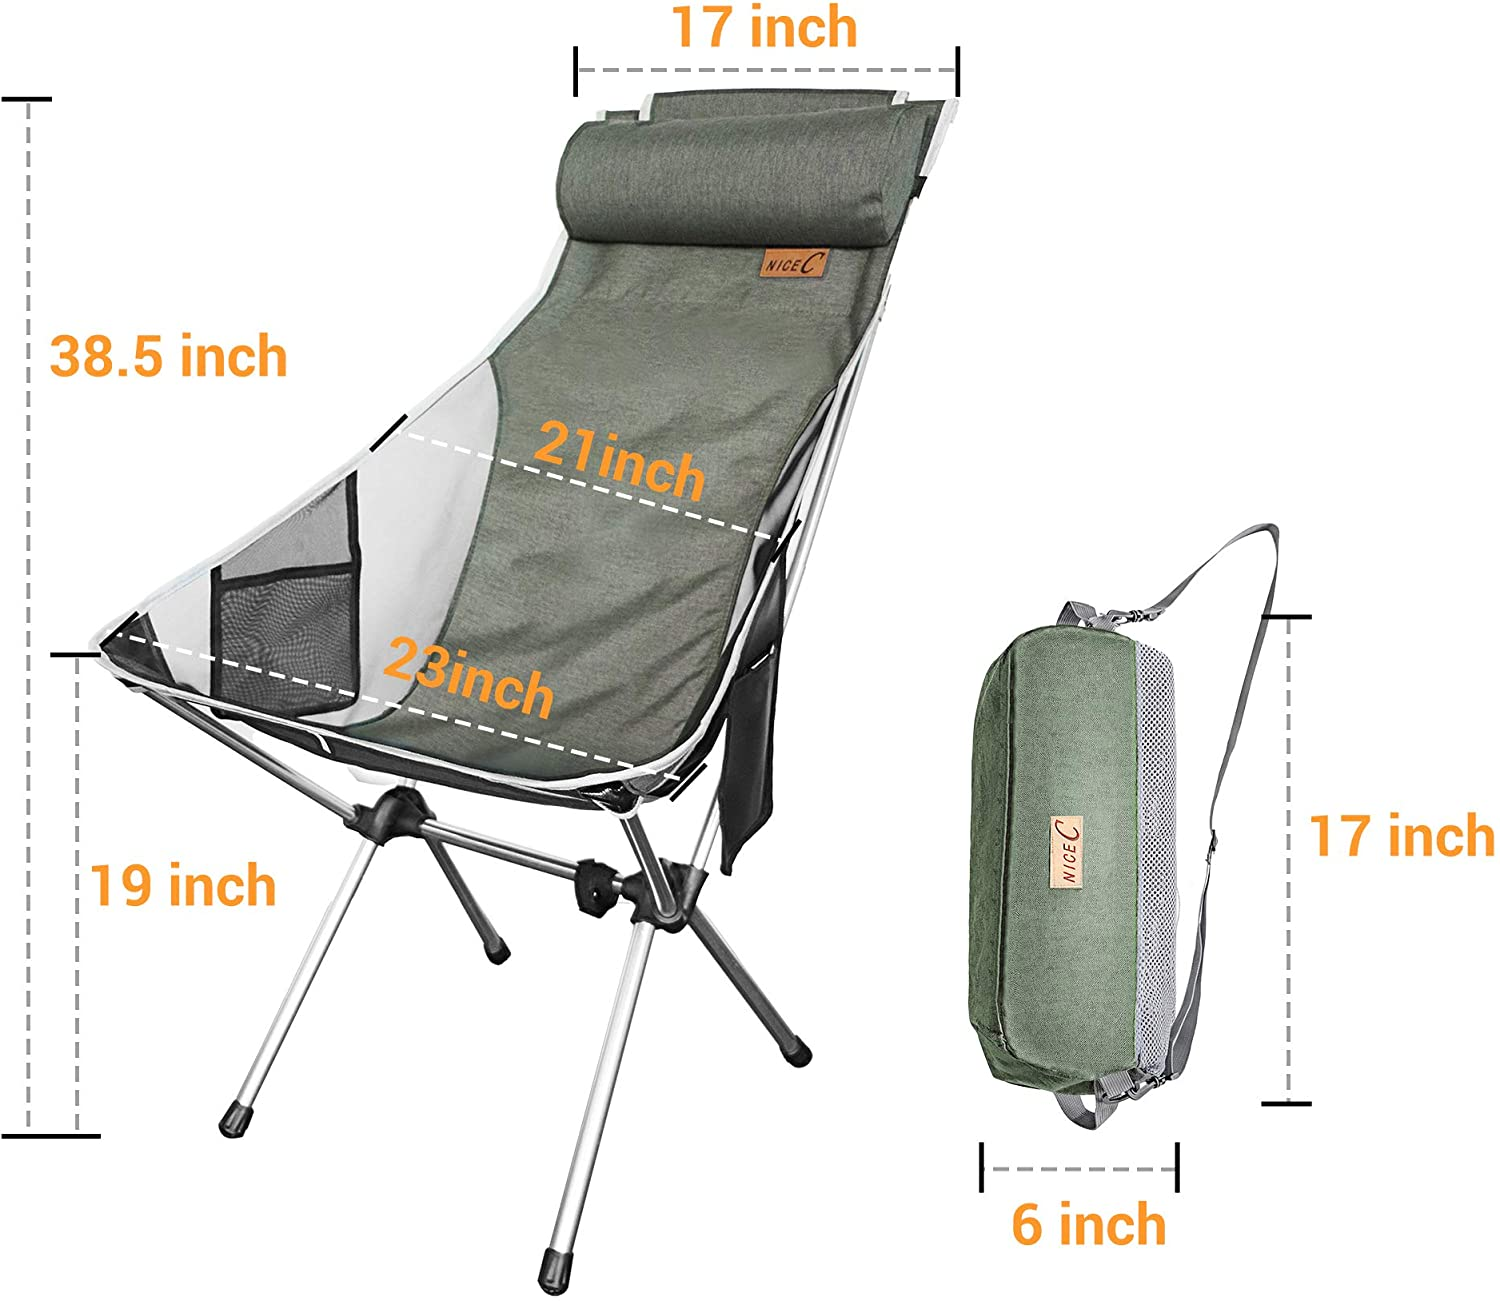 BBQ Travel Picnic Nice C Ultralight High Back Folding Camping Chair Outdoor Beach Backpacking Compact /& Heavy Duty Outdoor Camping with Headrest Festival with Carry Bag